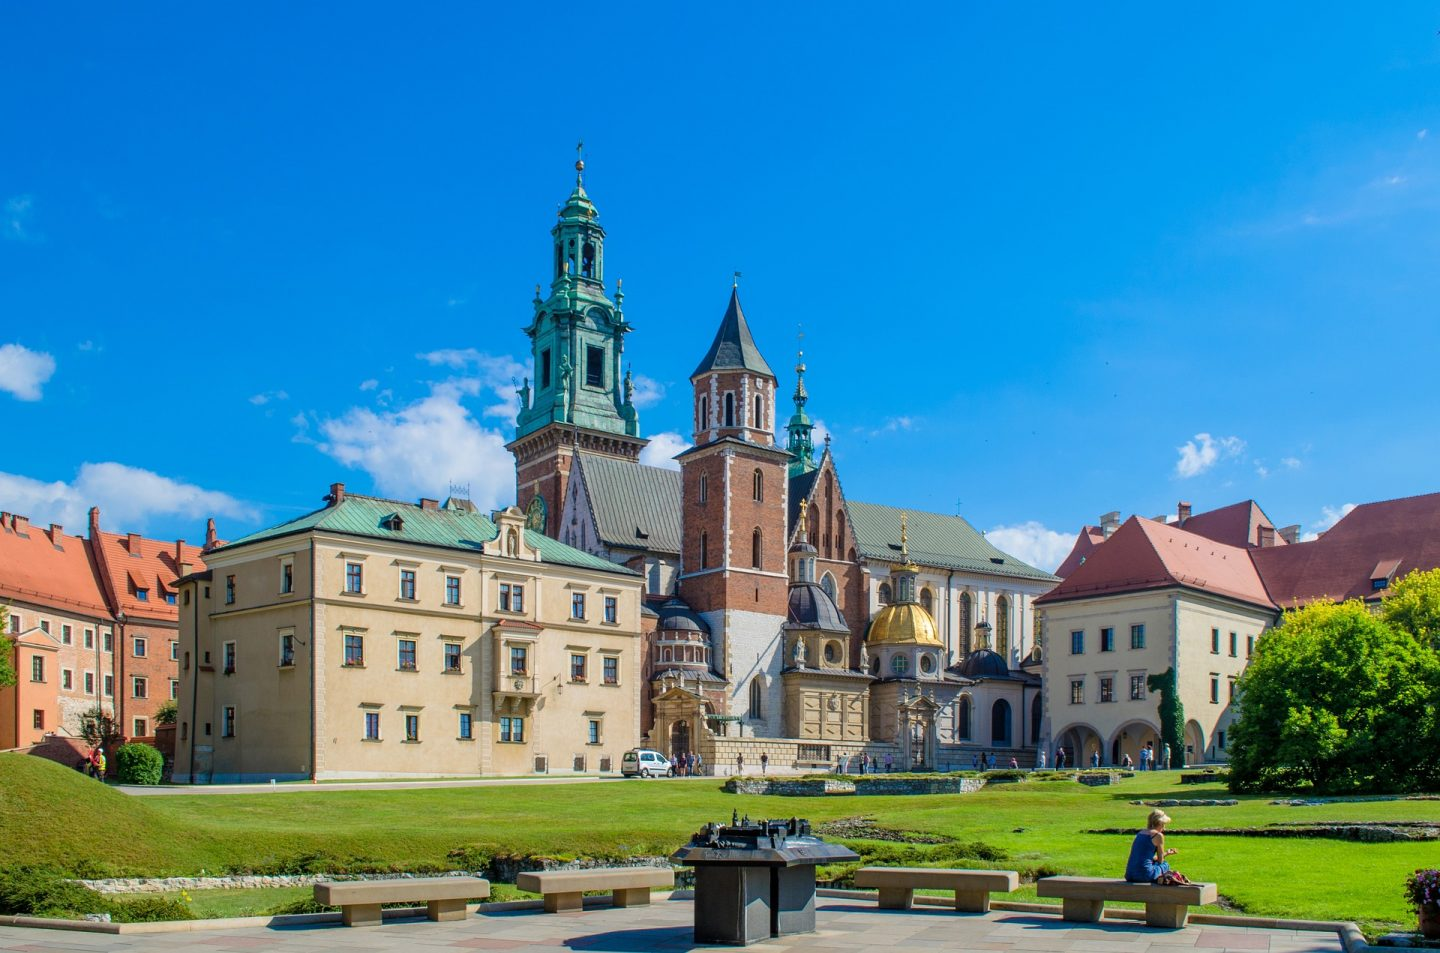 5 Things To Do In Krakow, Poland